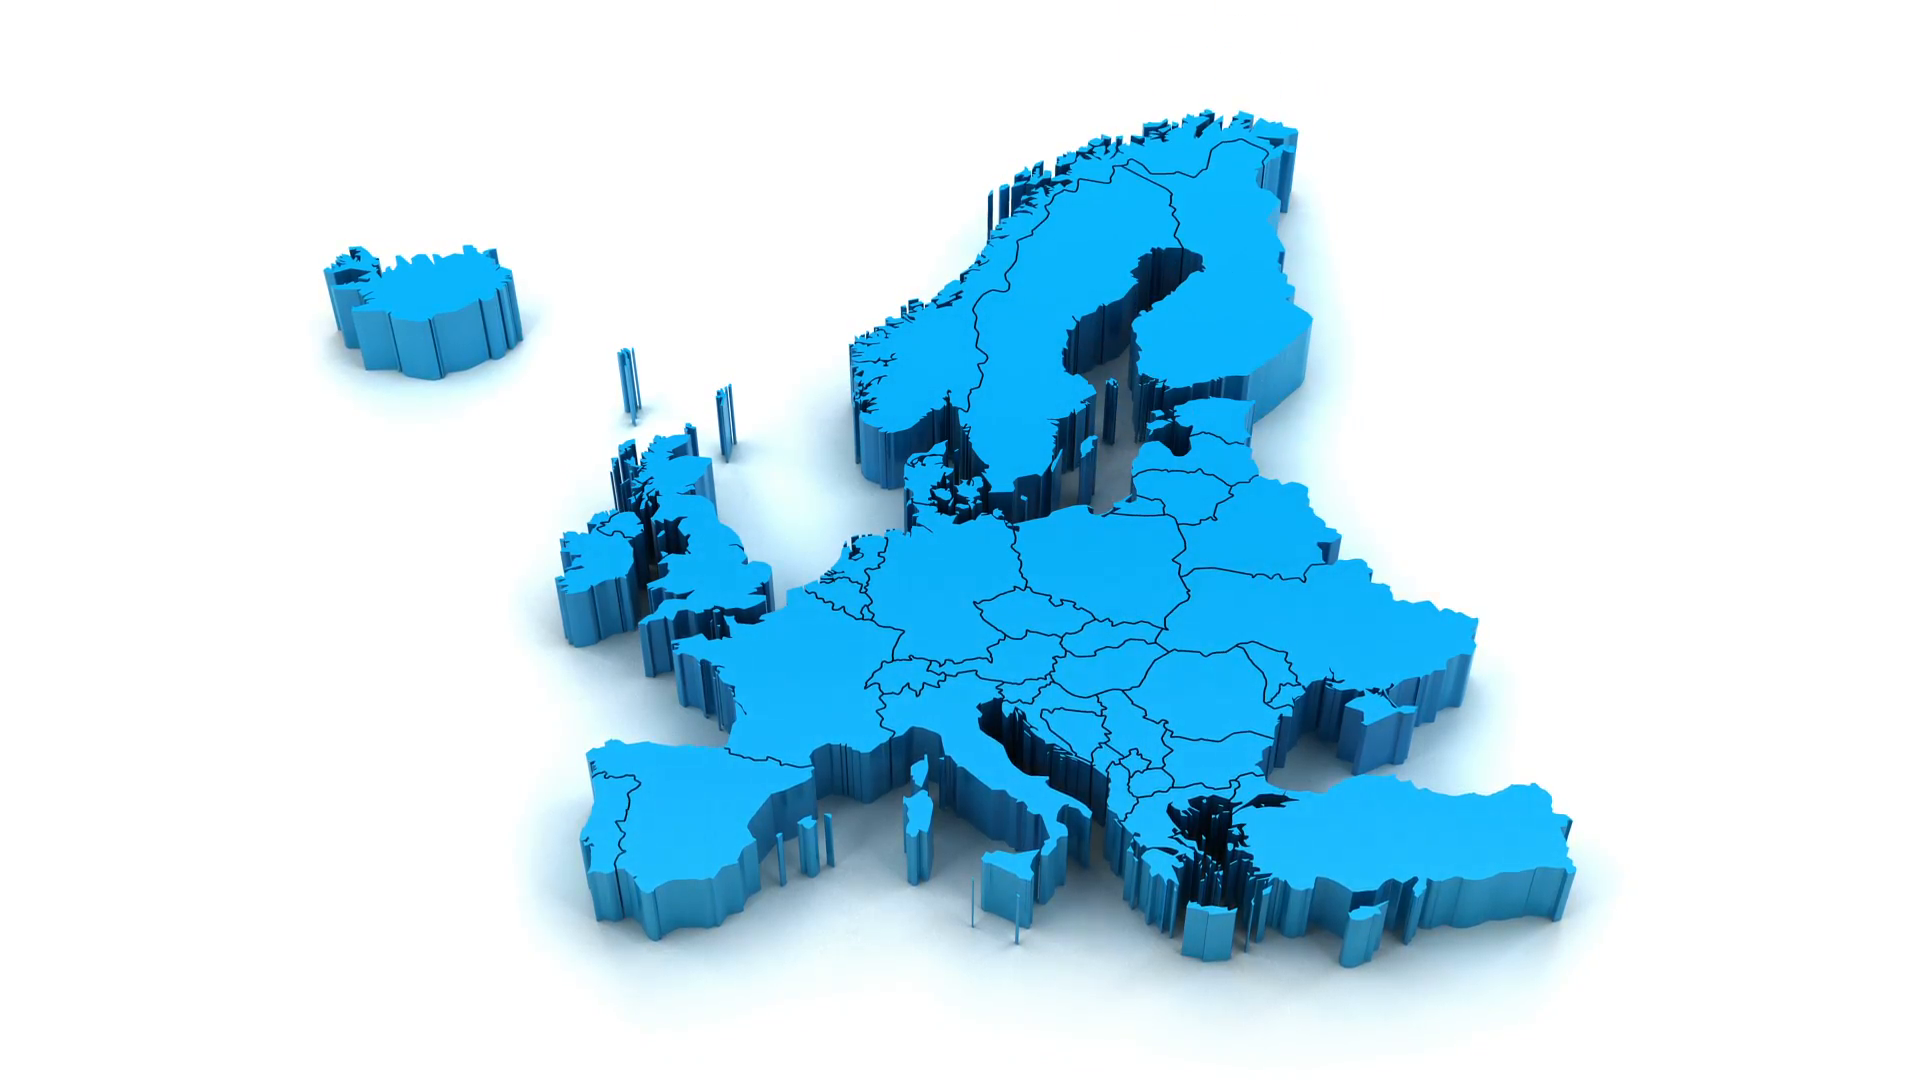 3 animation of europe map formed by individual countries